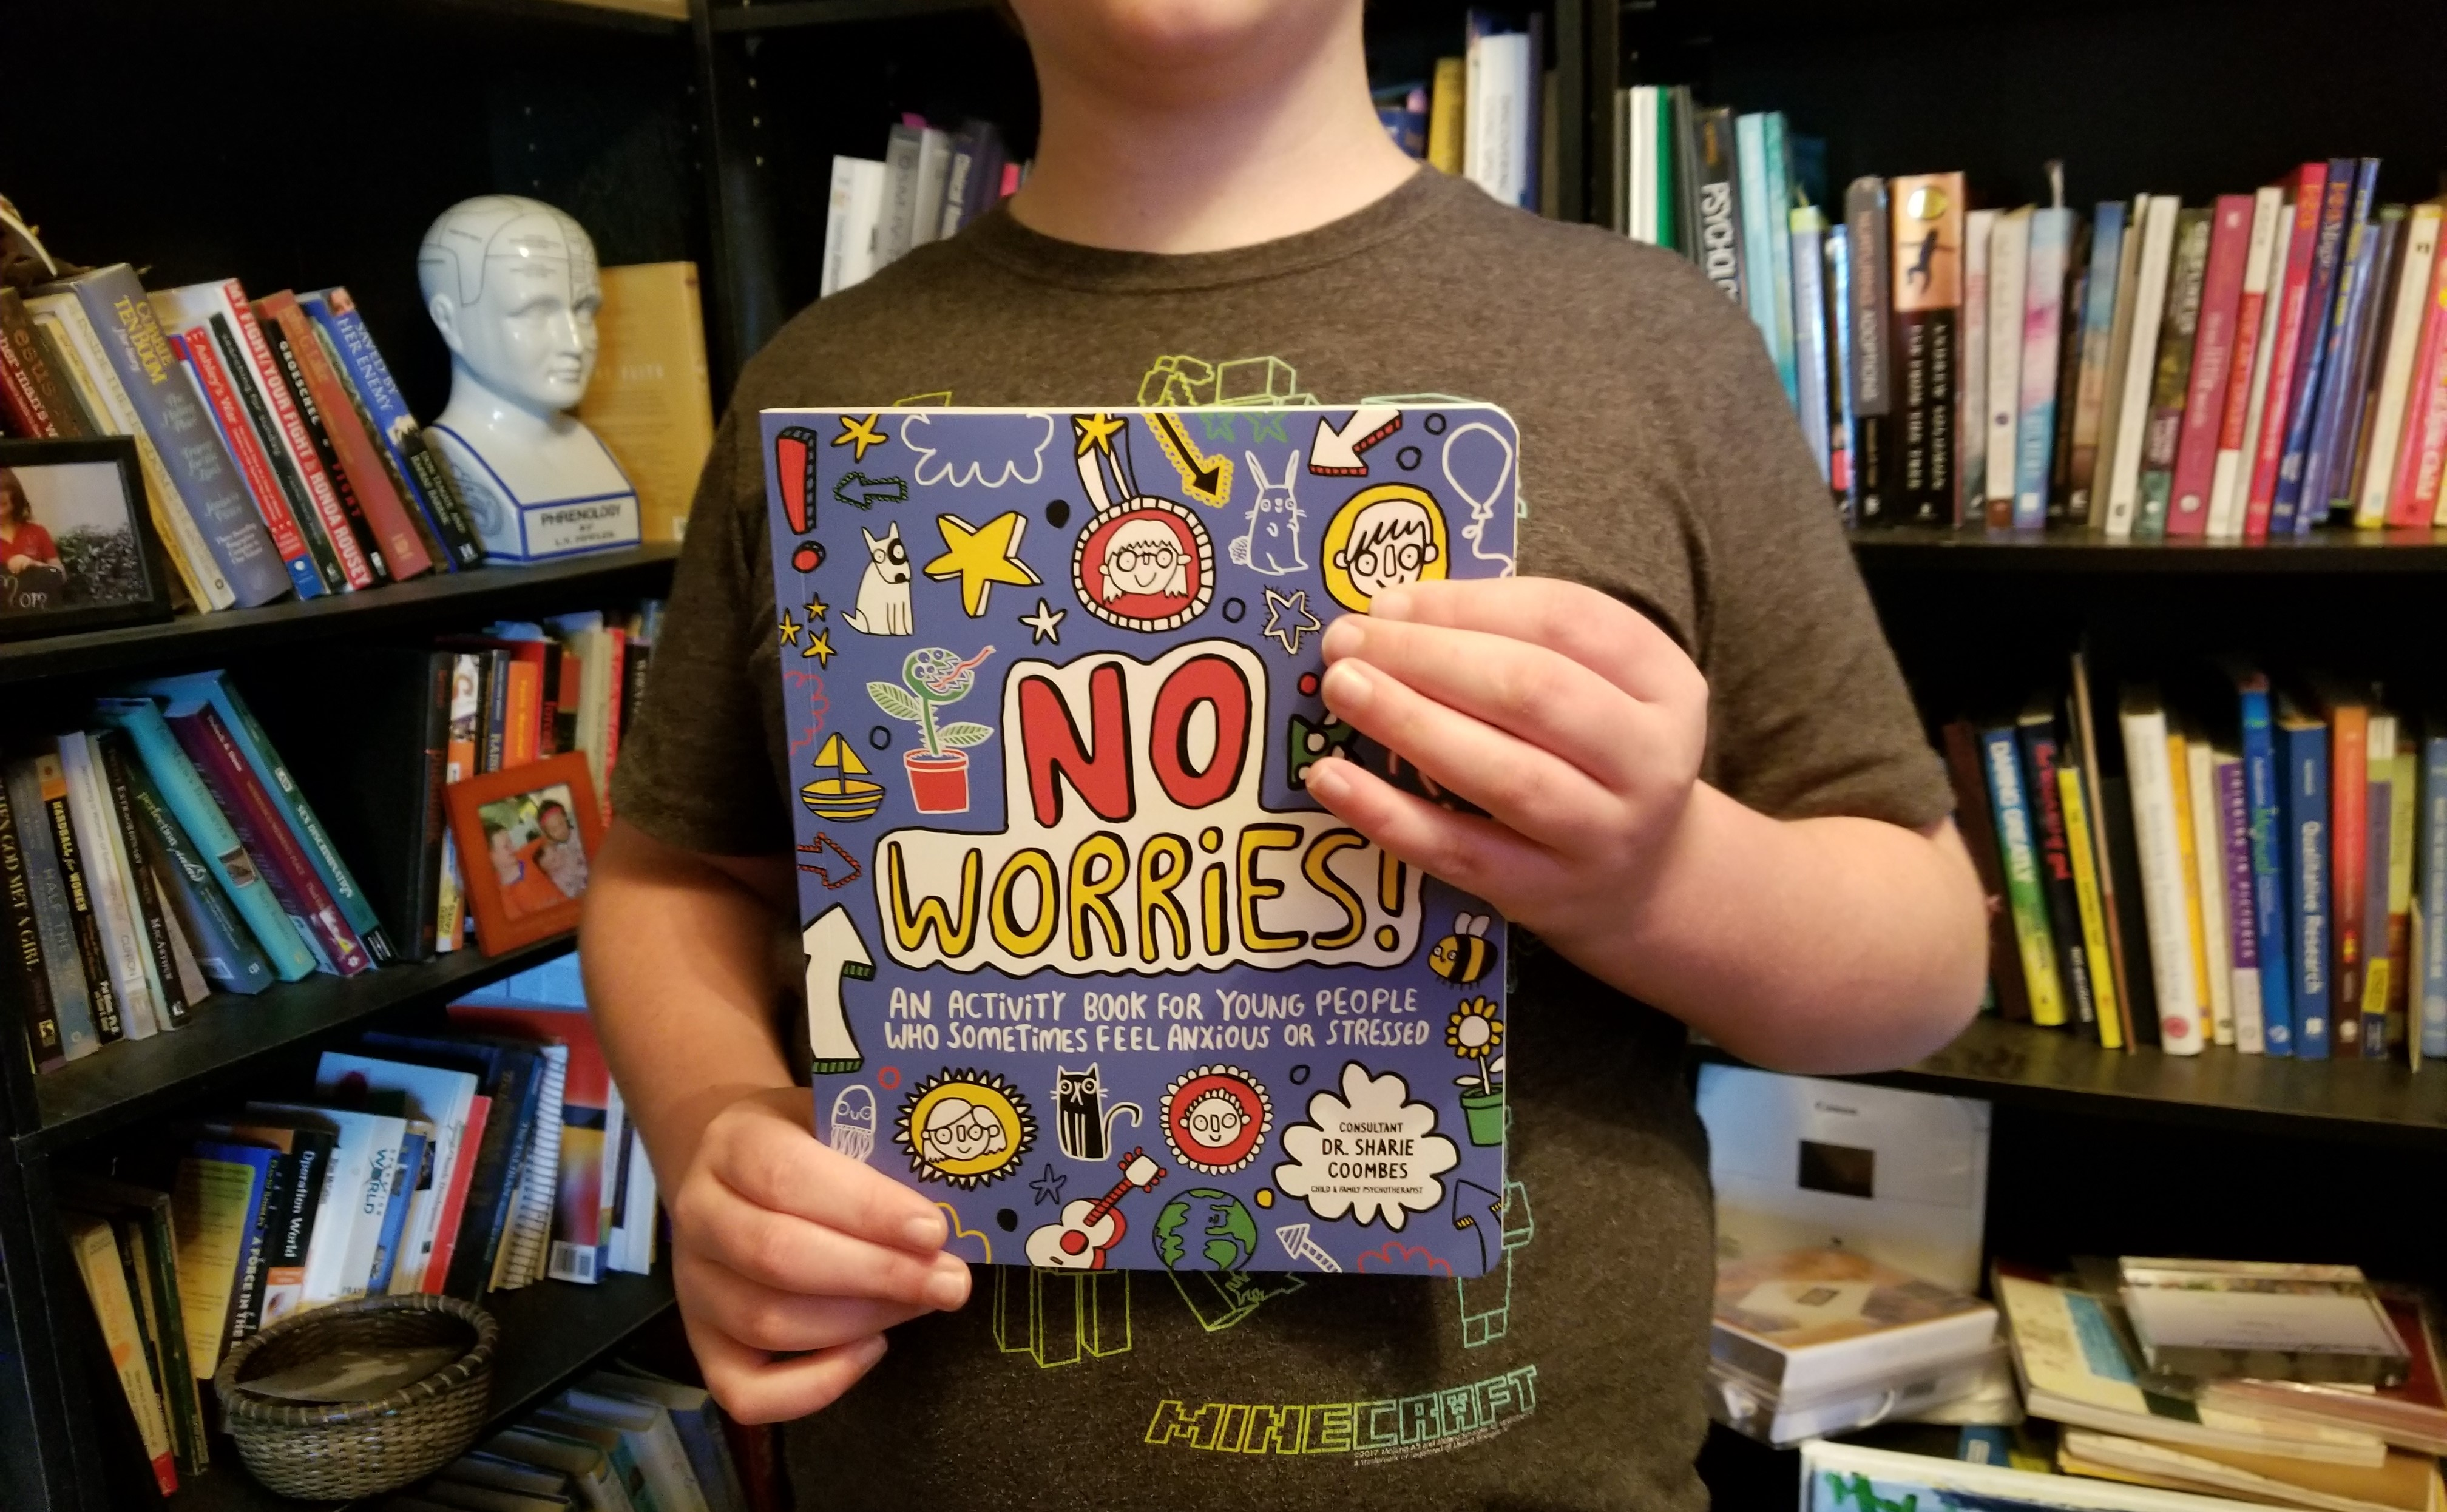 No Worries: An Activity Book for Young People Who Sometimes Feel Anxious or Stressed